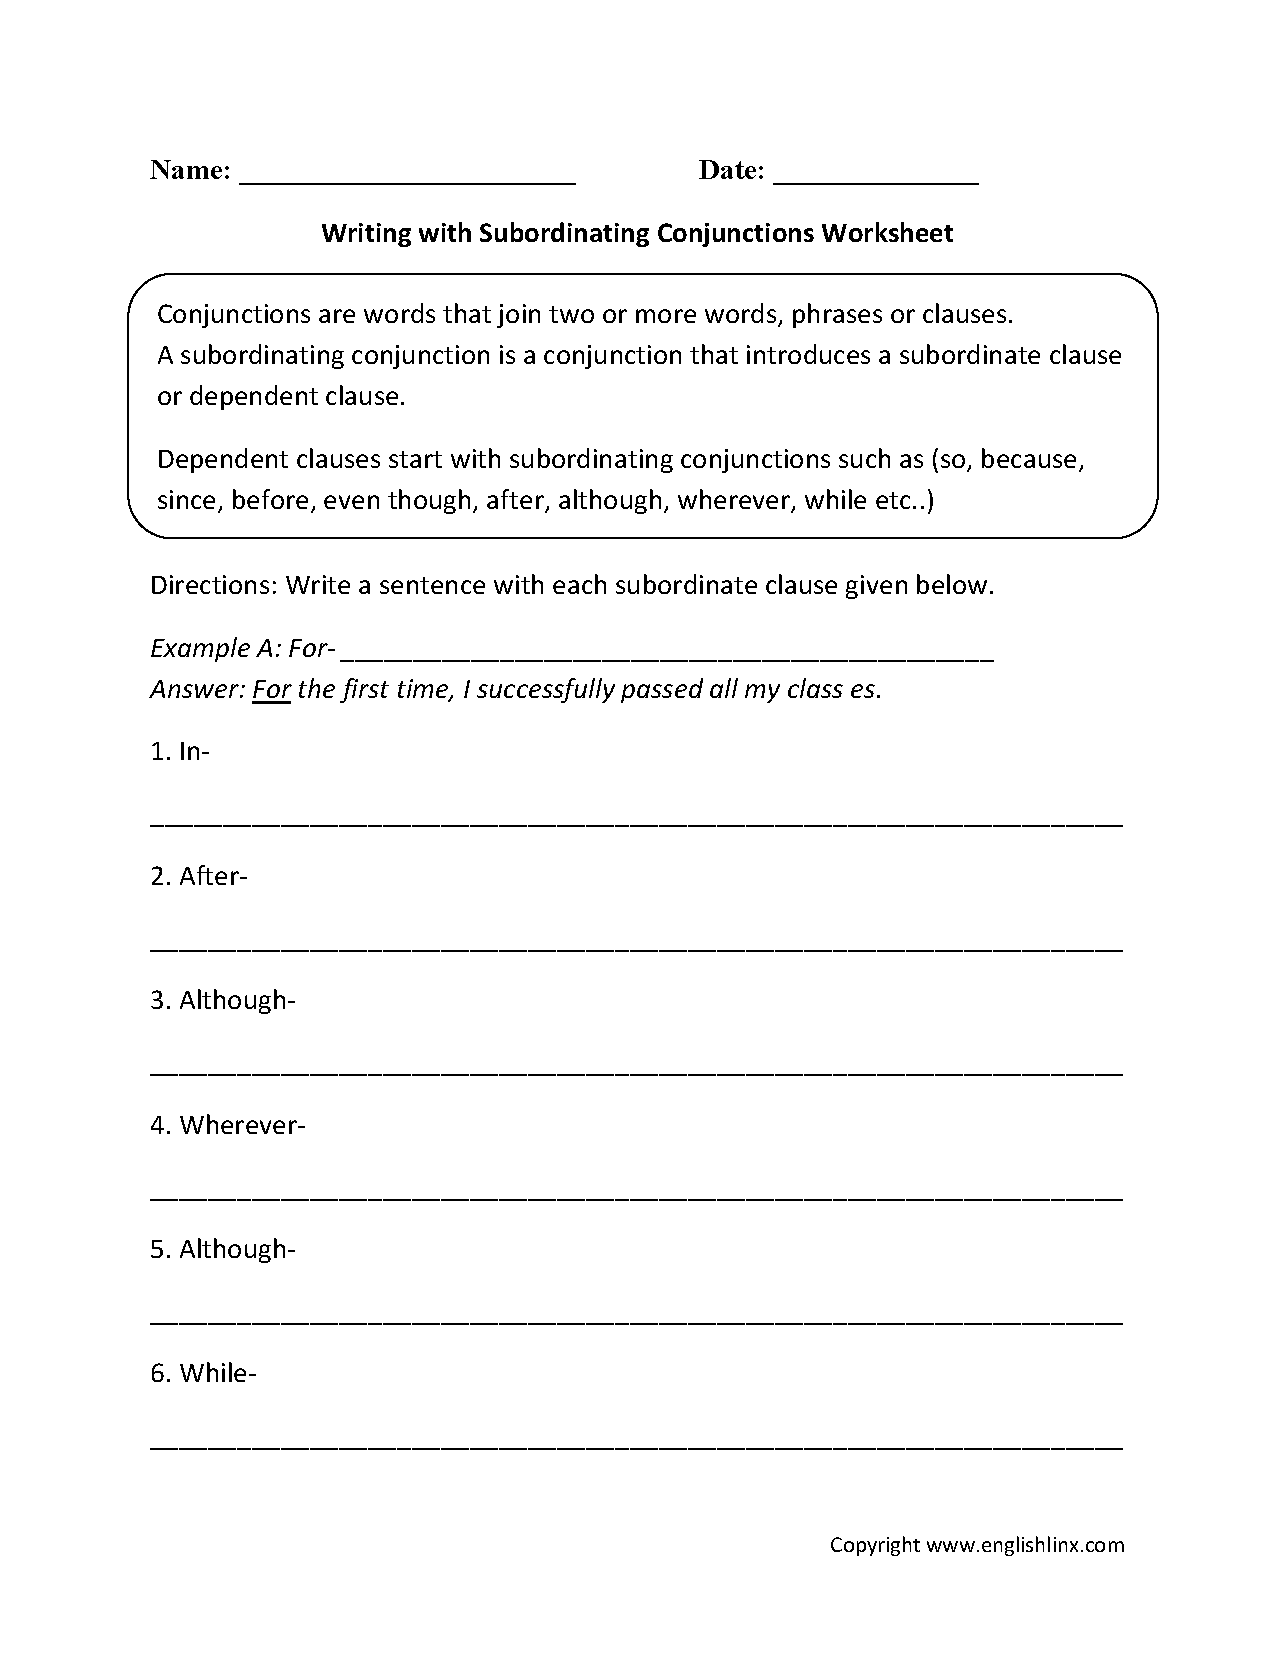 Worksheets Conjunctions Worksheets englishlinx com conjunctions worksheets subordinating worksheets